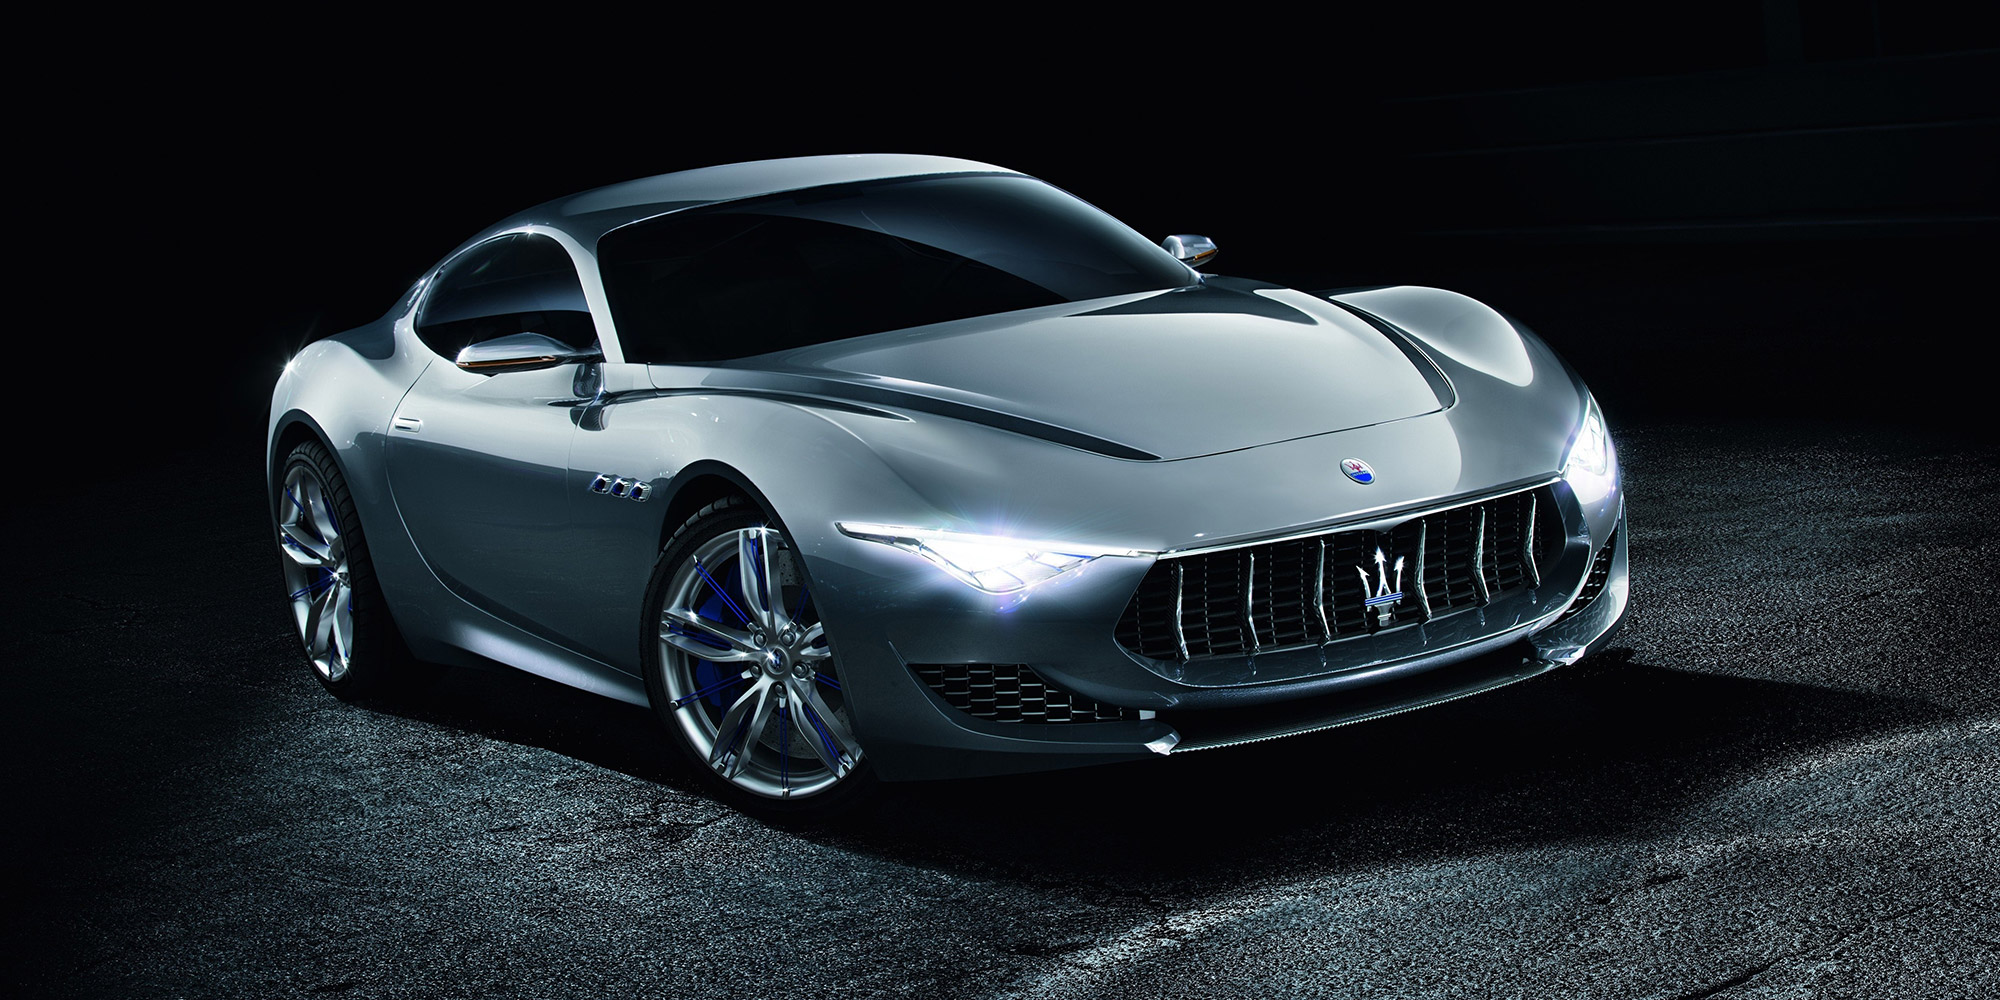 An electric Maserati Alfieri is promised by 2020